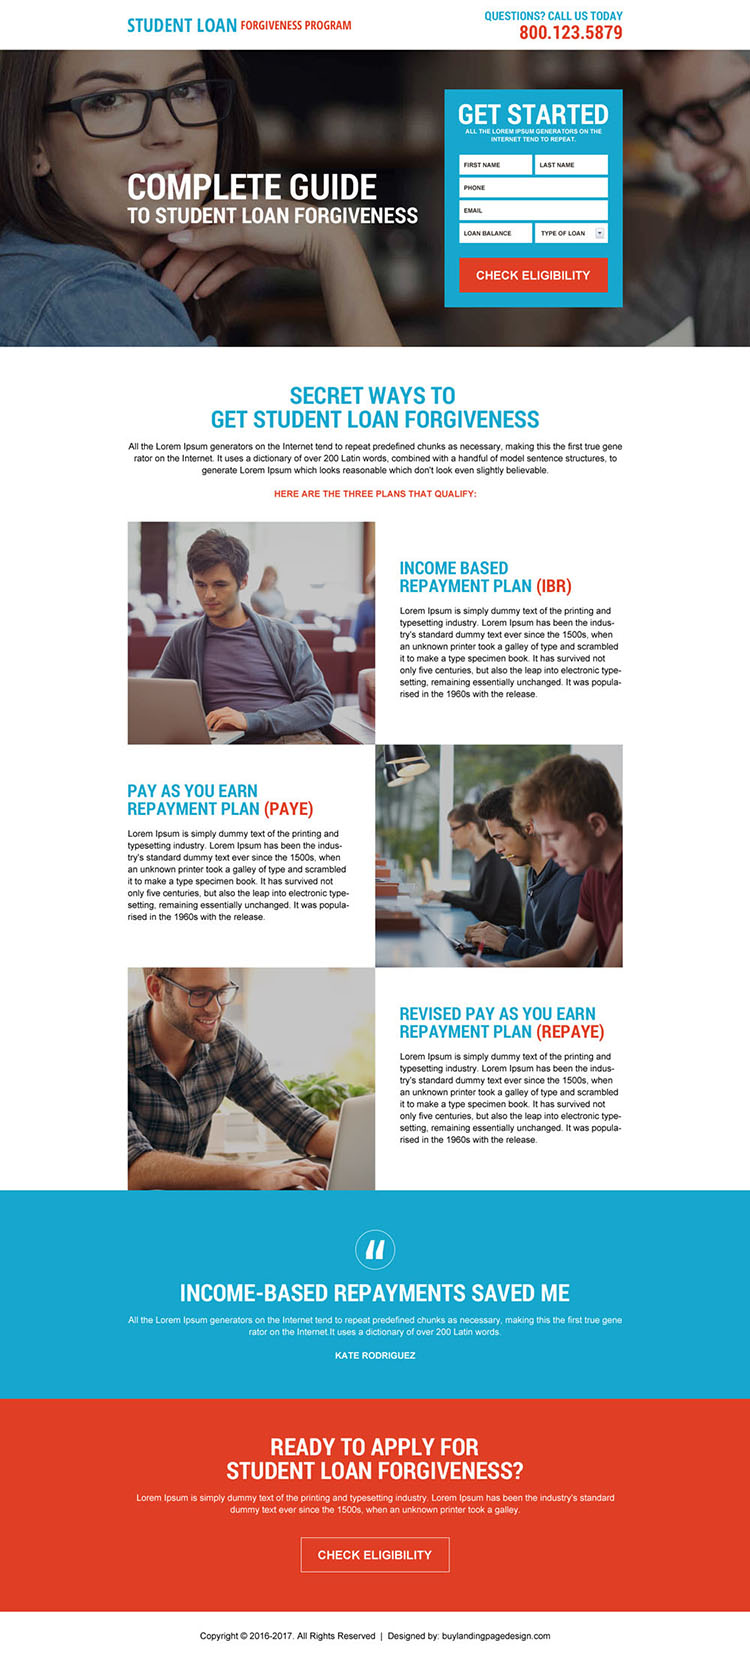 direct student loan forgiveness responsive landing page design